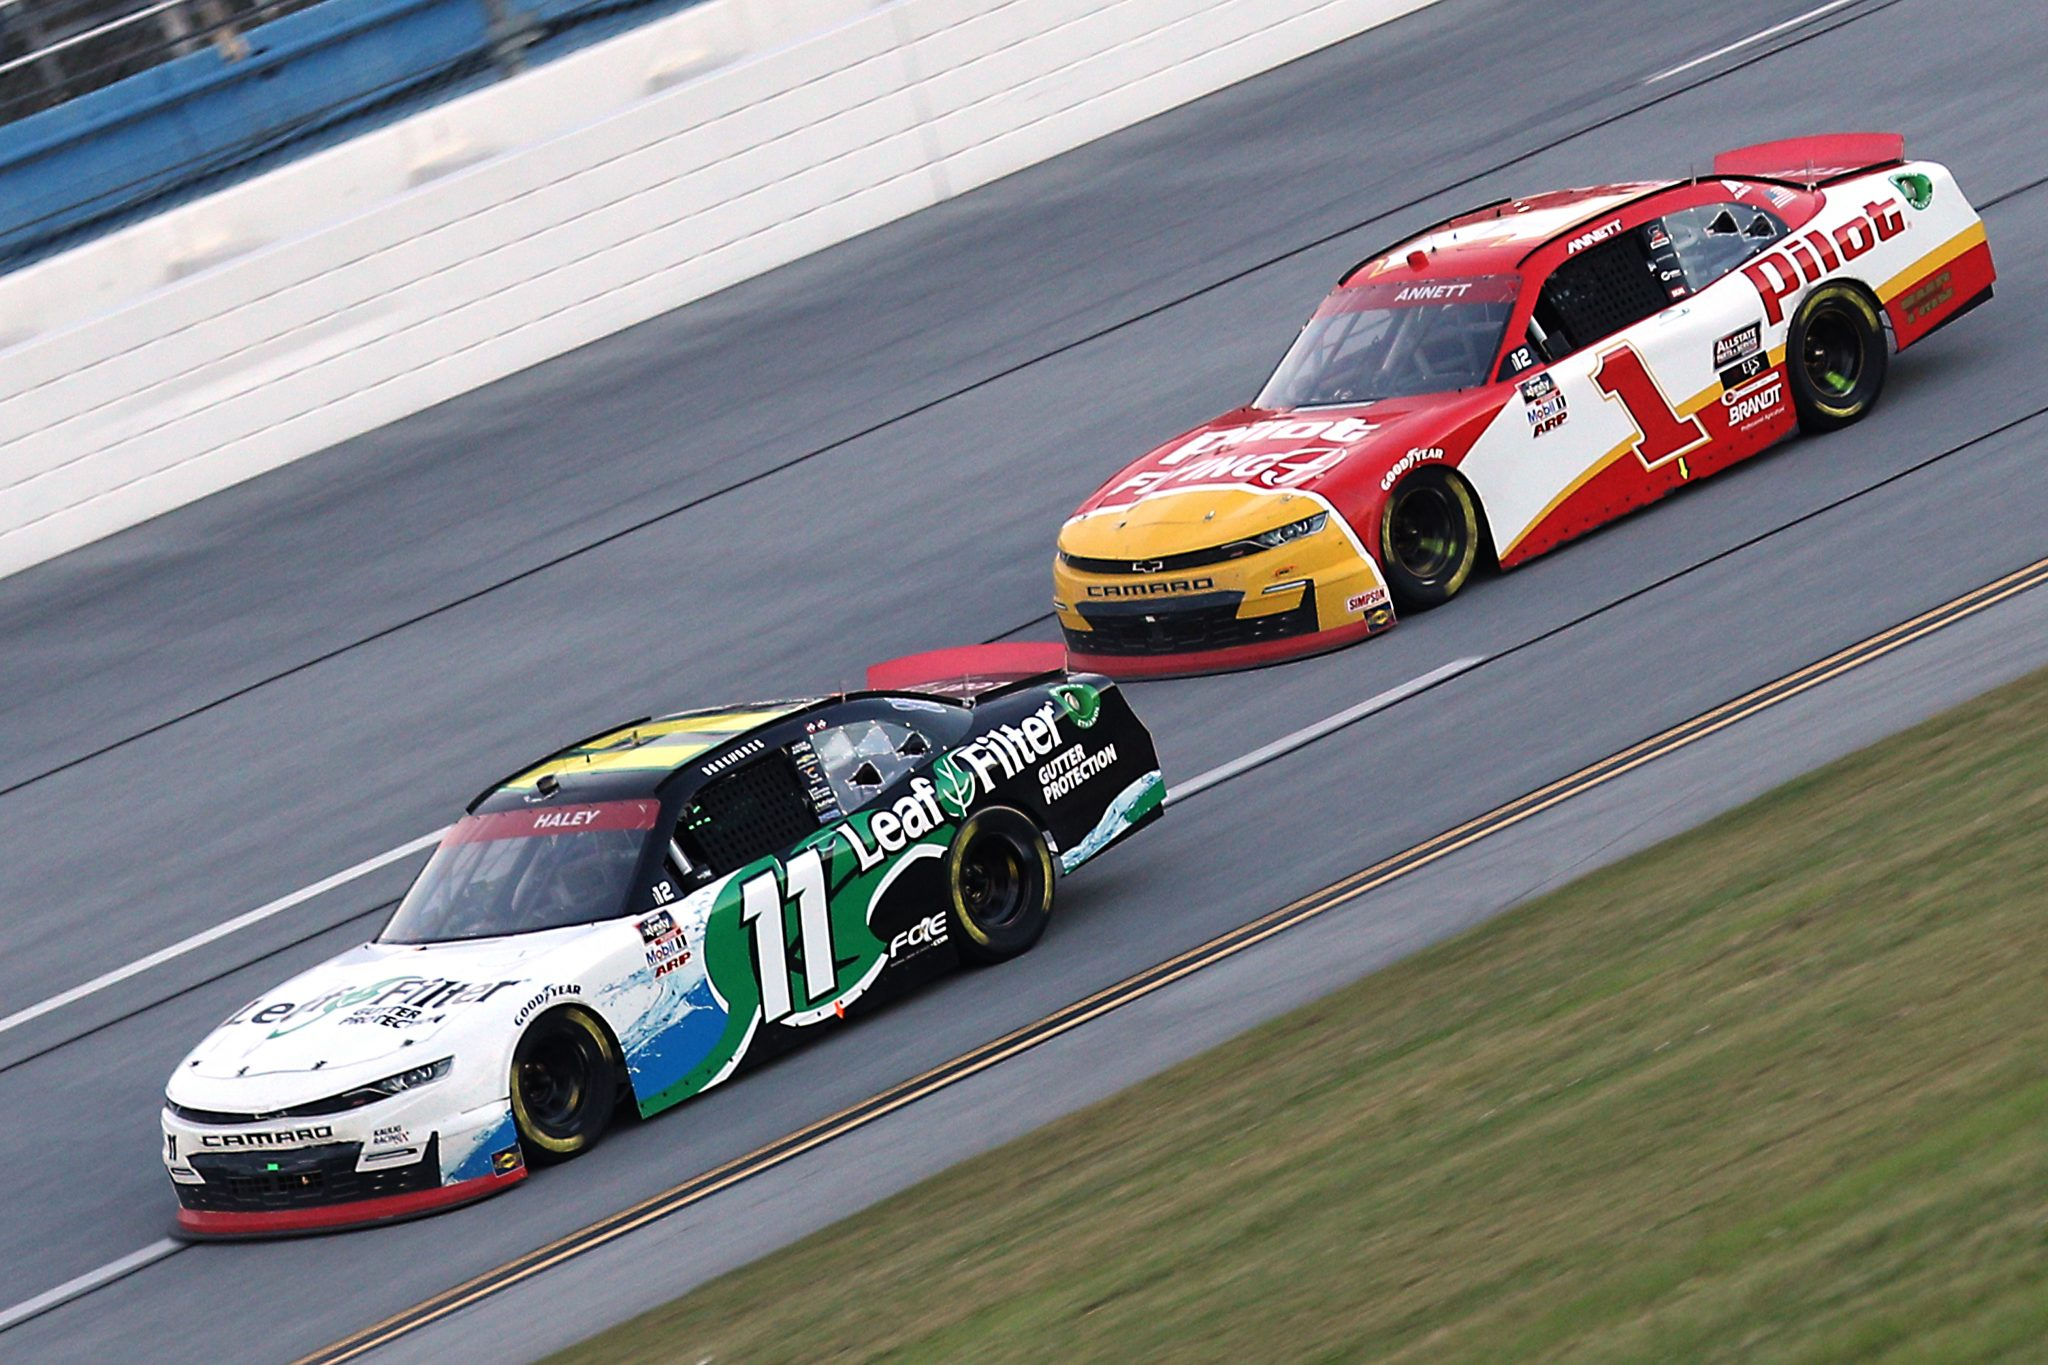 TALLADEGA, ALABAMA - OCTOBER 03: Justin Haley, driver of the #11 LeafFilter Gutter Protection Chevrolet, and Michael Annett, driver of the #1 Pilot Flying J Chevrolet, race during the NASCAR Xfinity Series Ag-Pro 300 at Talladega Superspeedway on October 03, 2020 in Talladega, Alabama. (Photo by Chris Graythen/Getty Images) | Getty Images